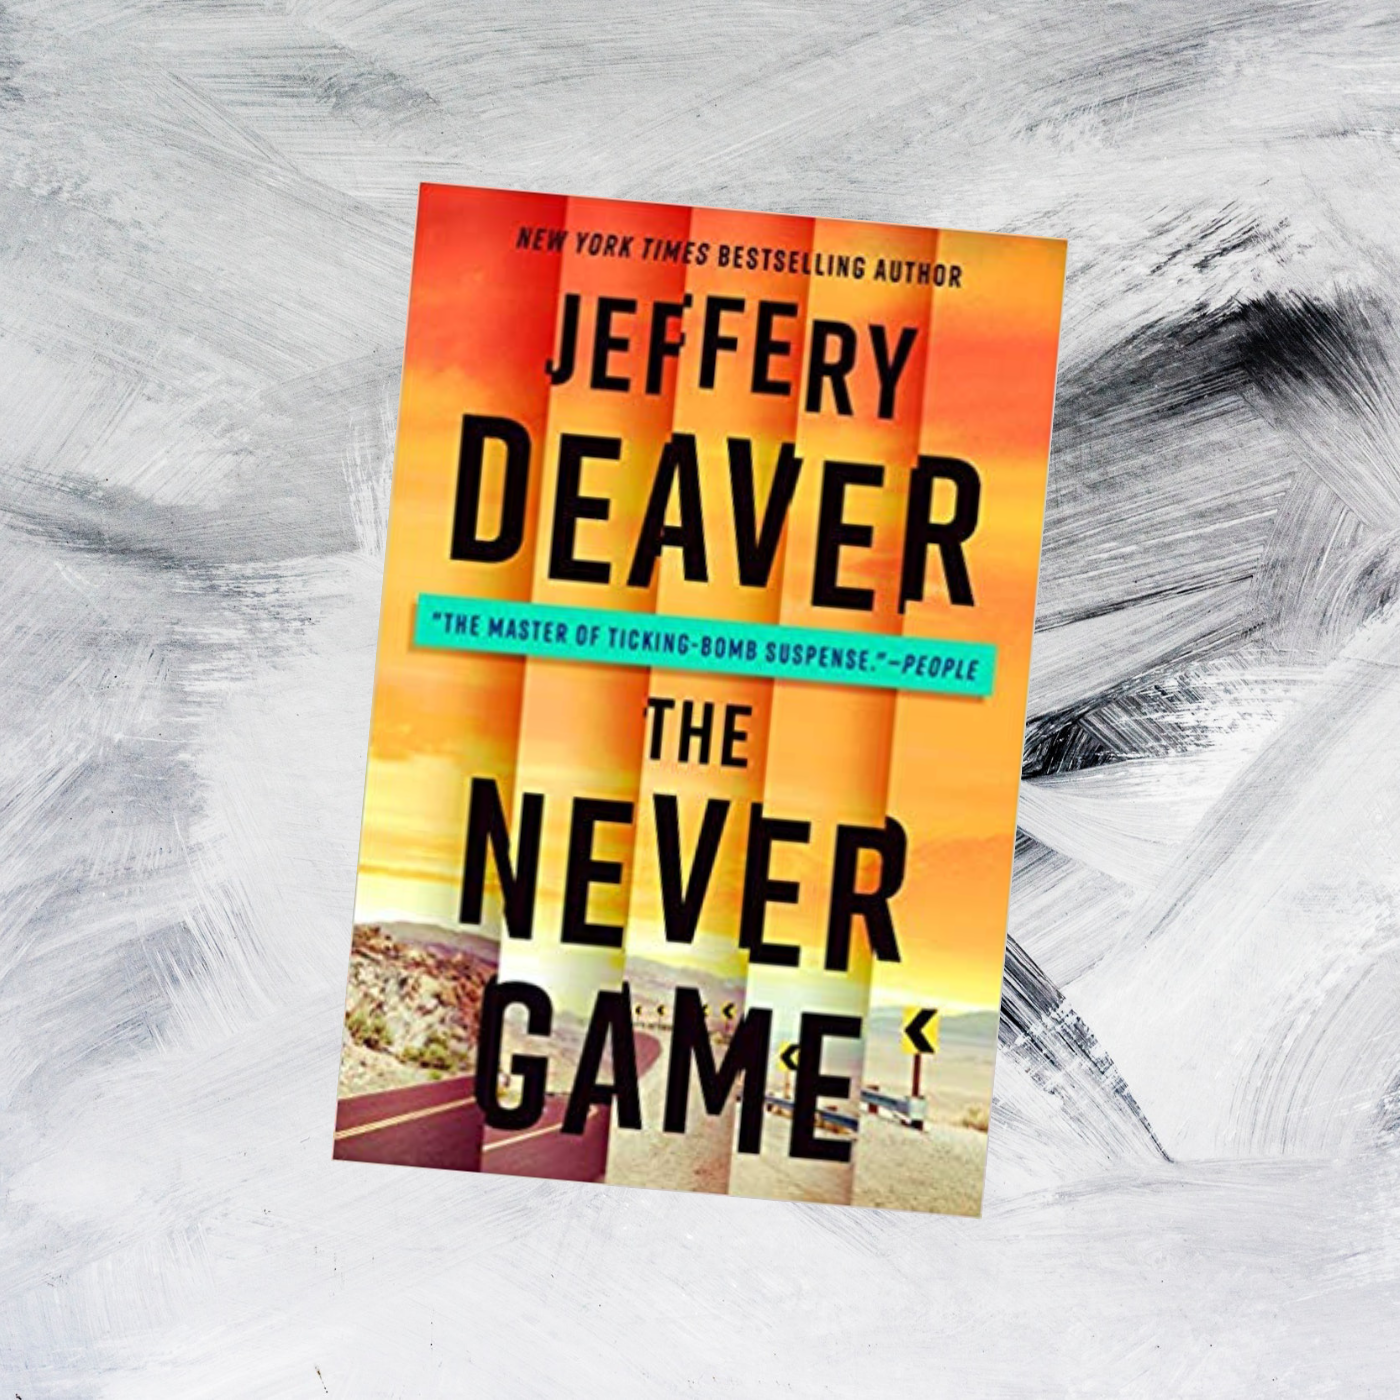 The Never Game By Jeffery Deaver Brings To Readers A Twisted Plot